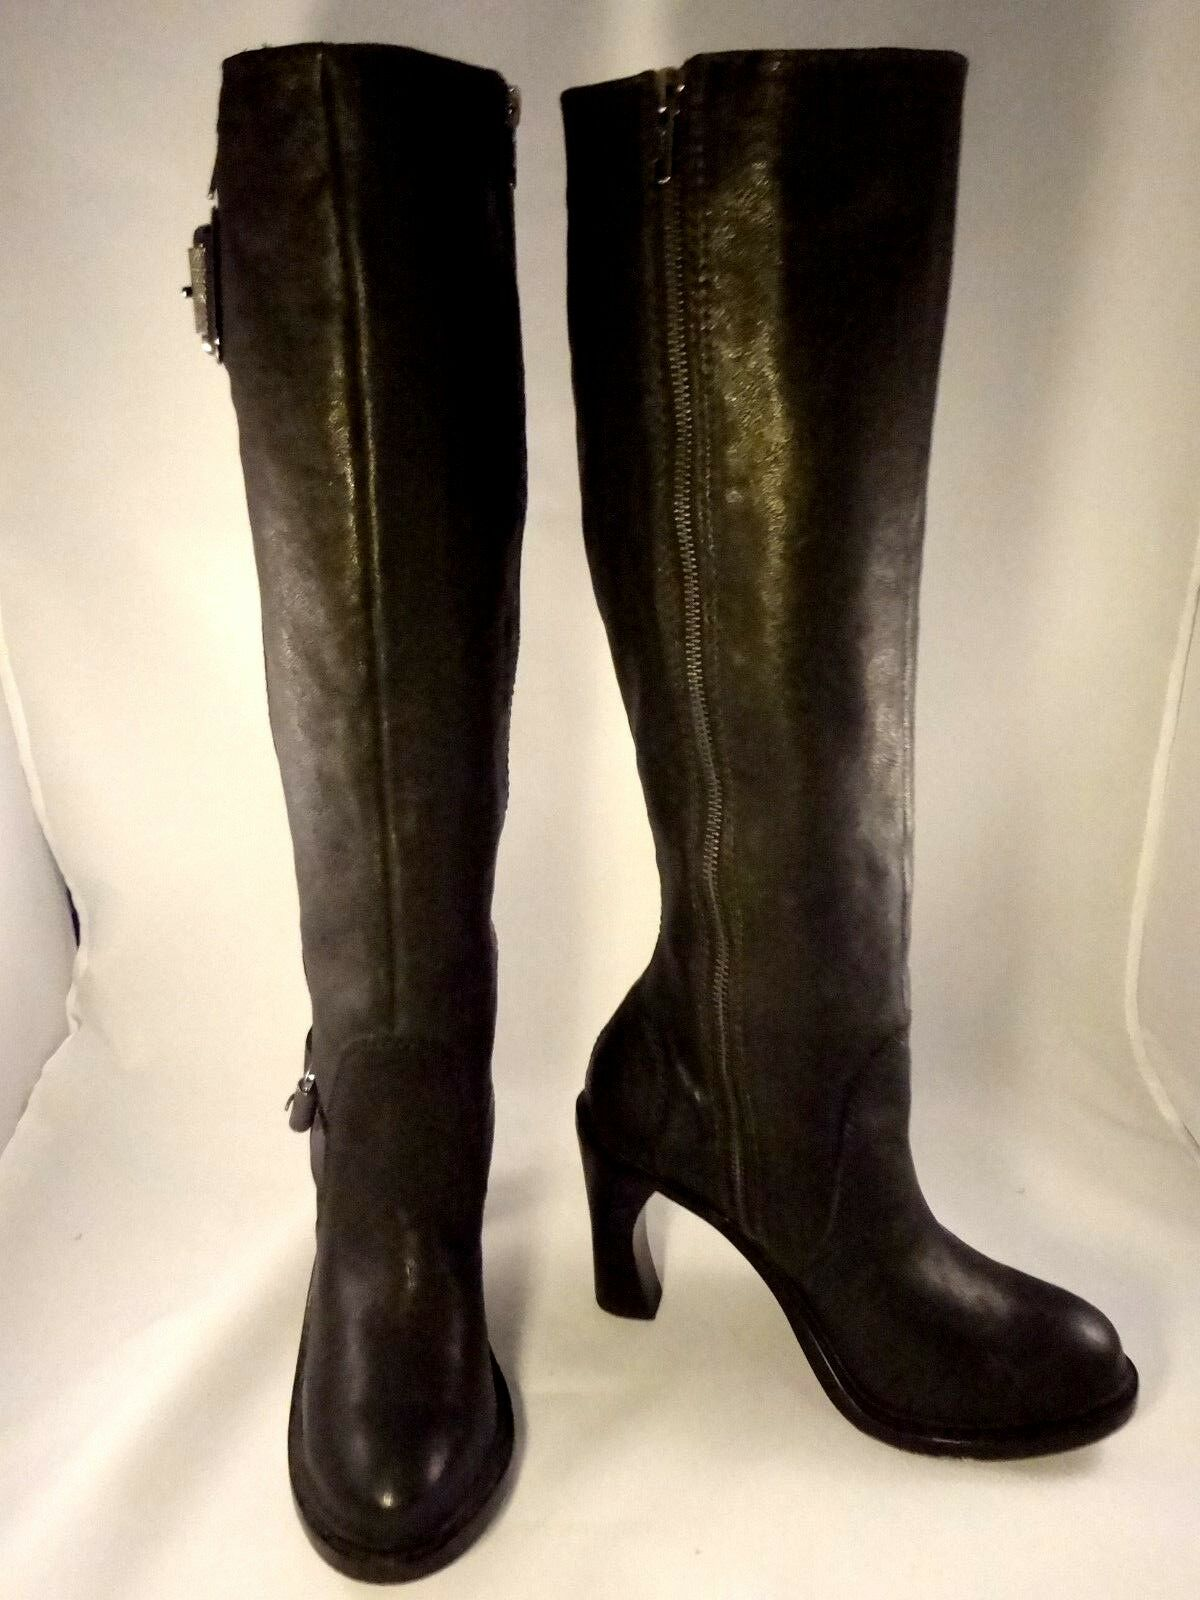 MINT VERA WANG LAVENDER WOMEN SEXY Stiefel SIZE 6 M SEXY WOMEN KNEE HIGH BLACK LEATHER a3384e